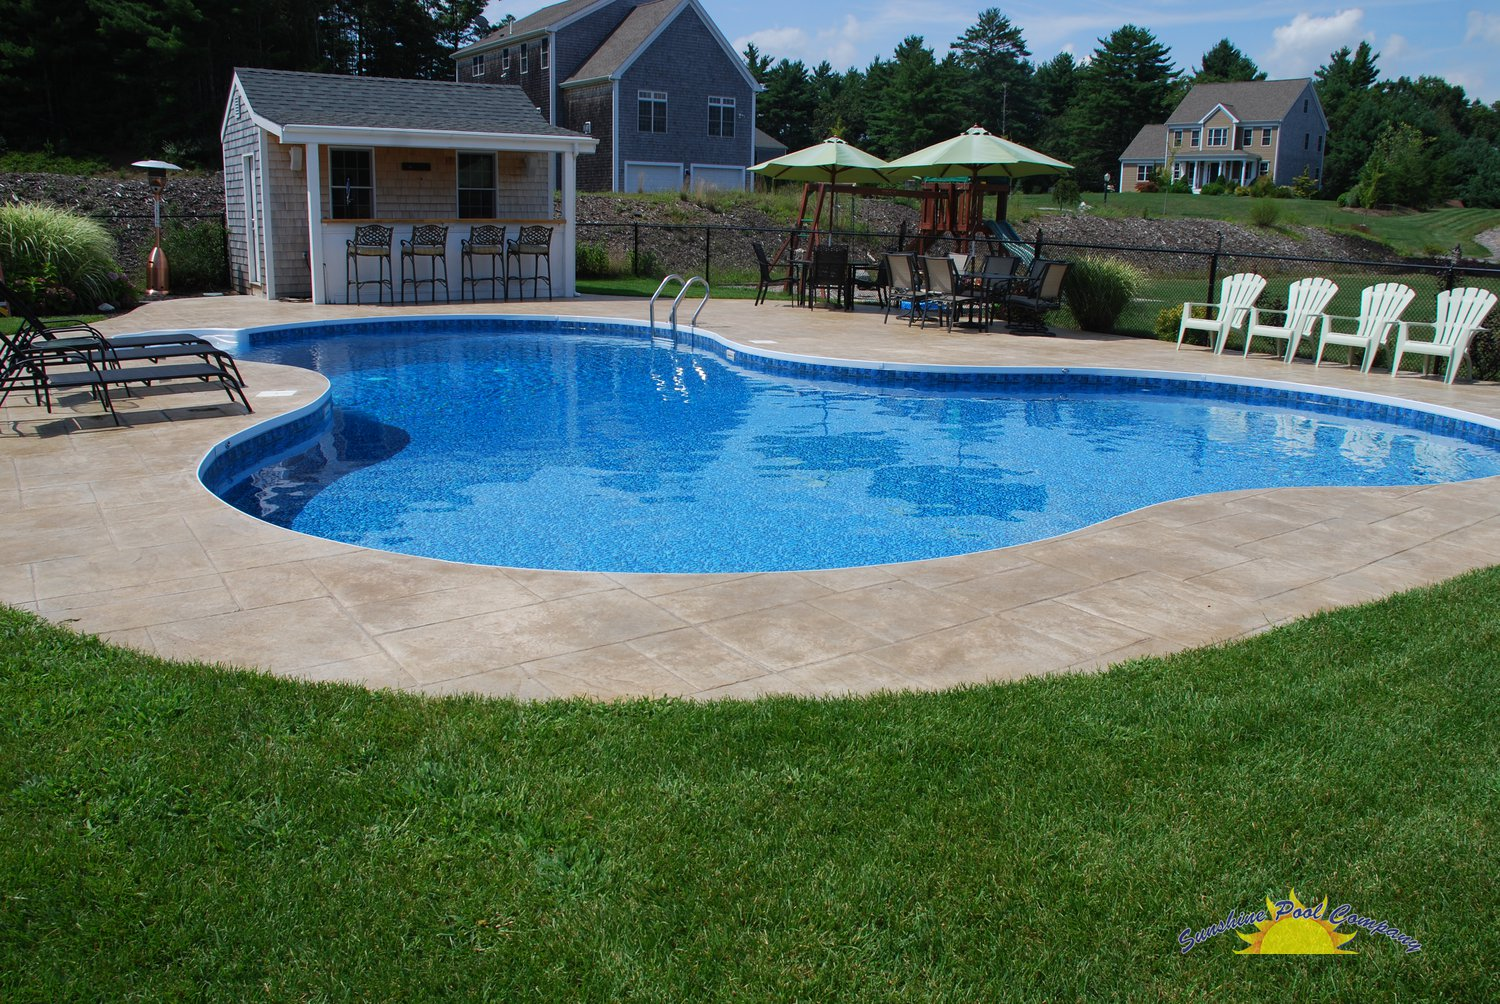 Pin by elizabeth wadman on future house stuff pinterest for Pictures of a pool